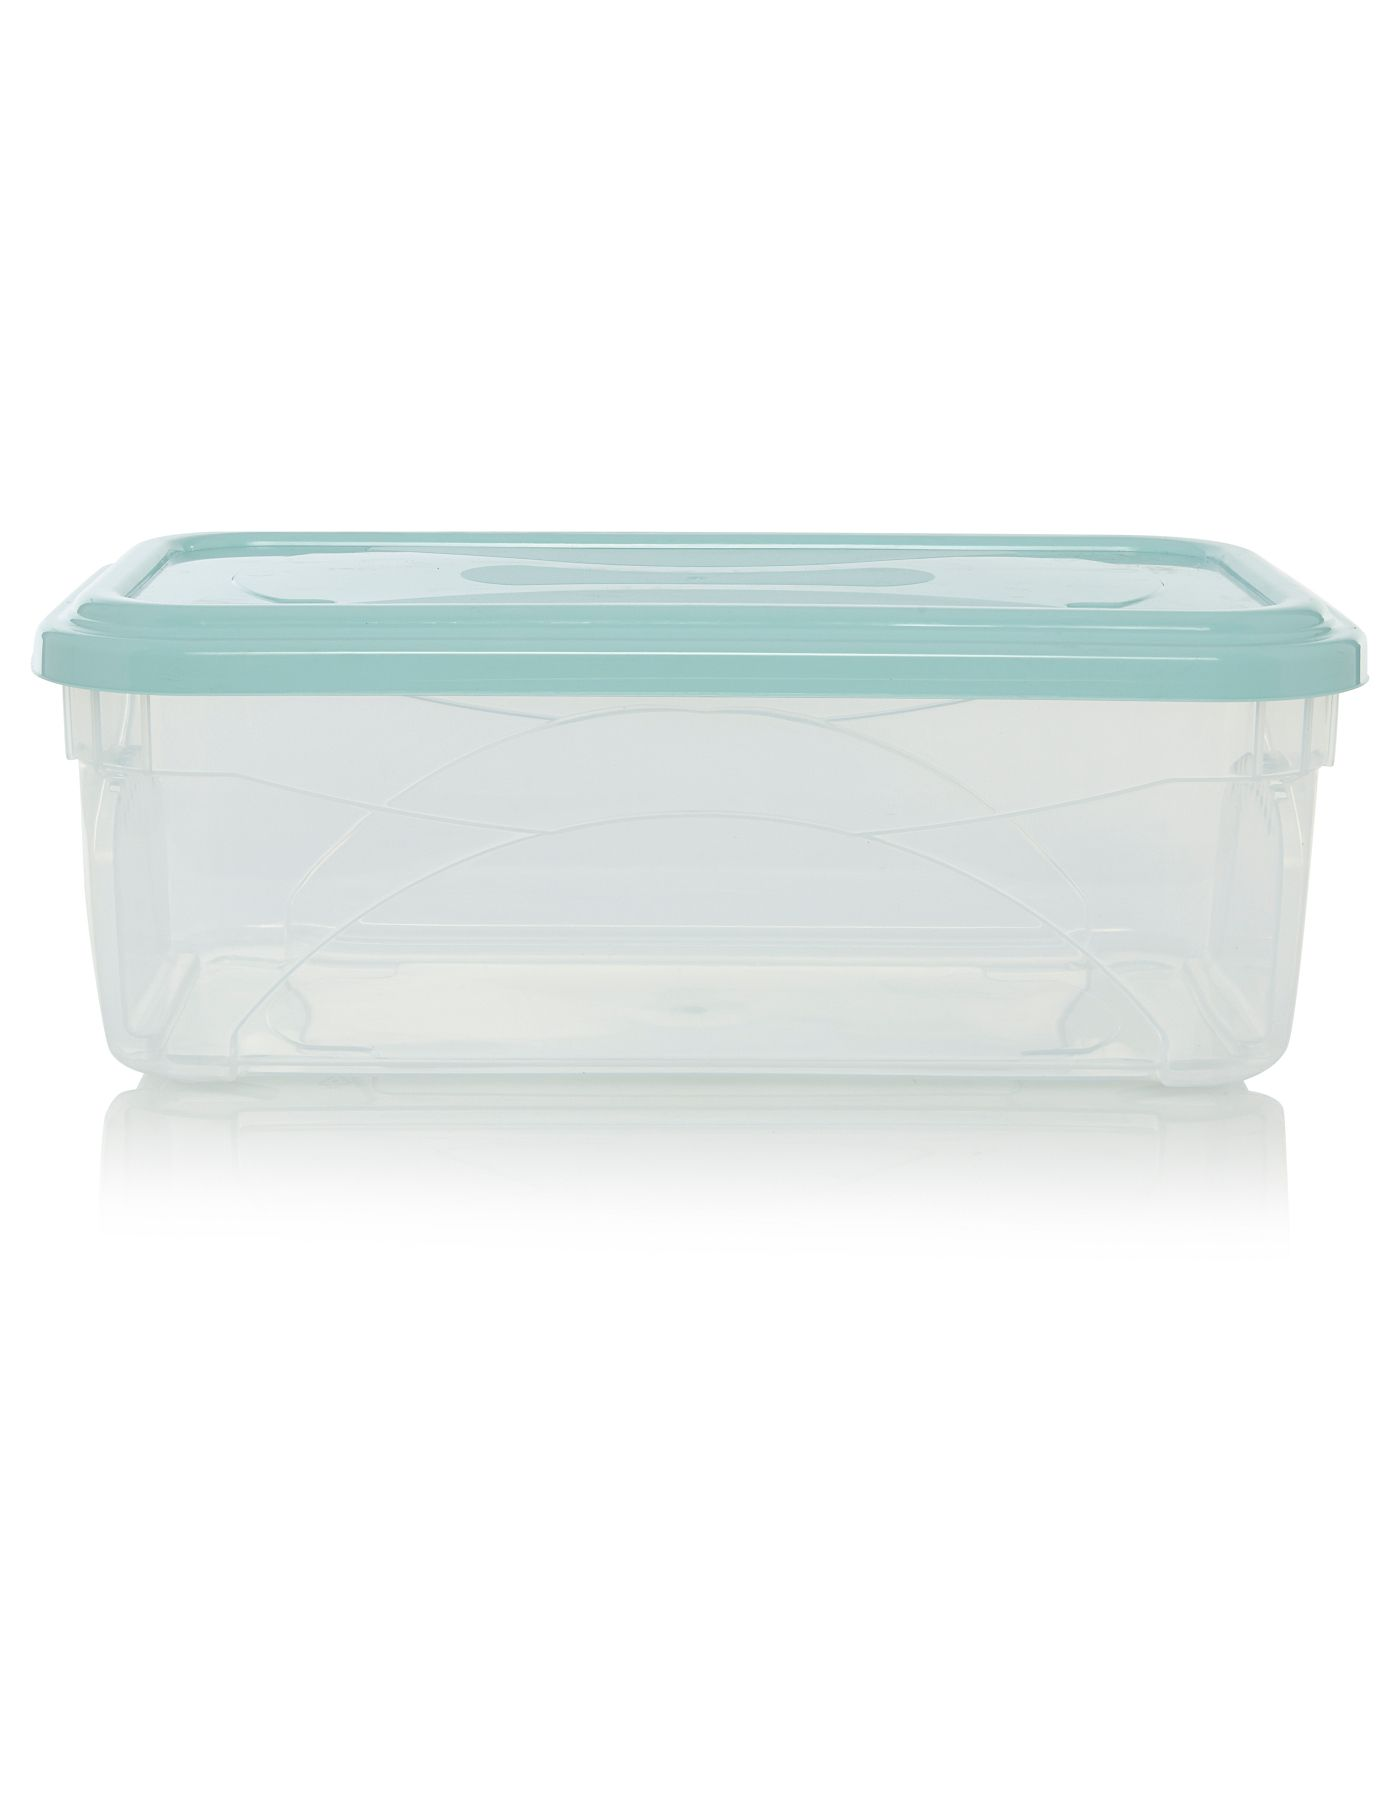 Food Storage Containers Asda Part - 24: ASDA 11L Shoe Storage Box U0026 Lid - Various Colours | Storage | ASDA Direct